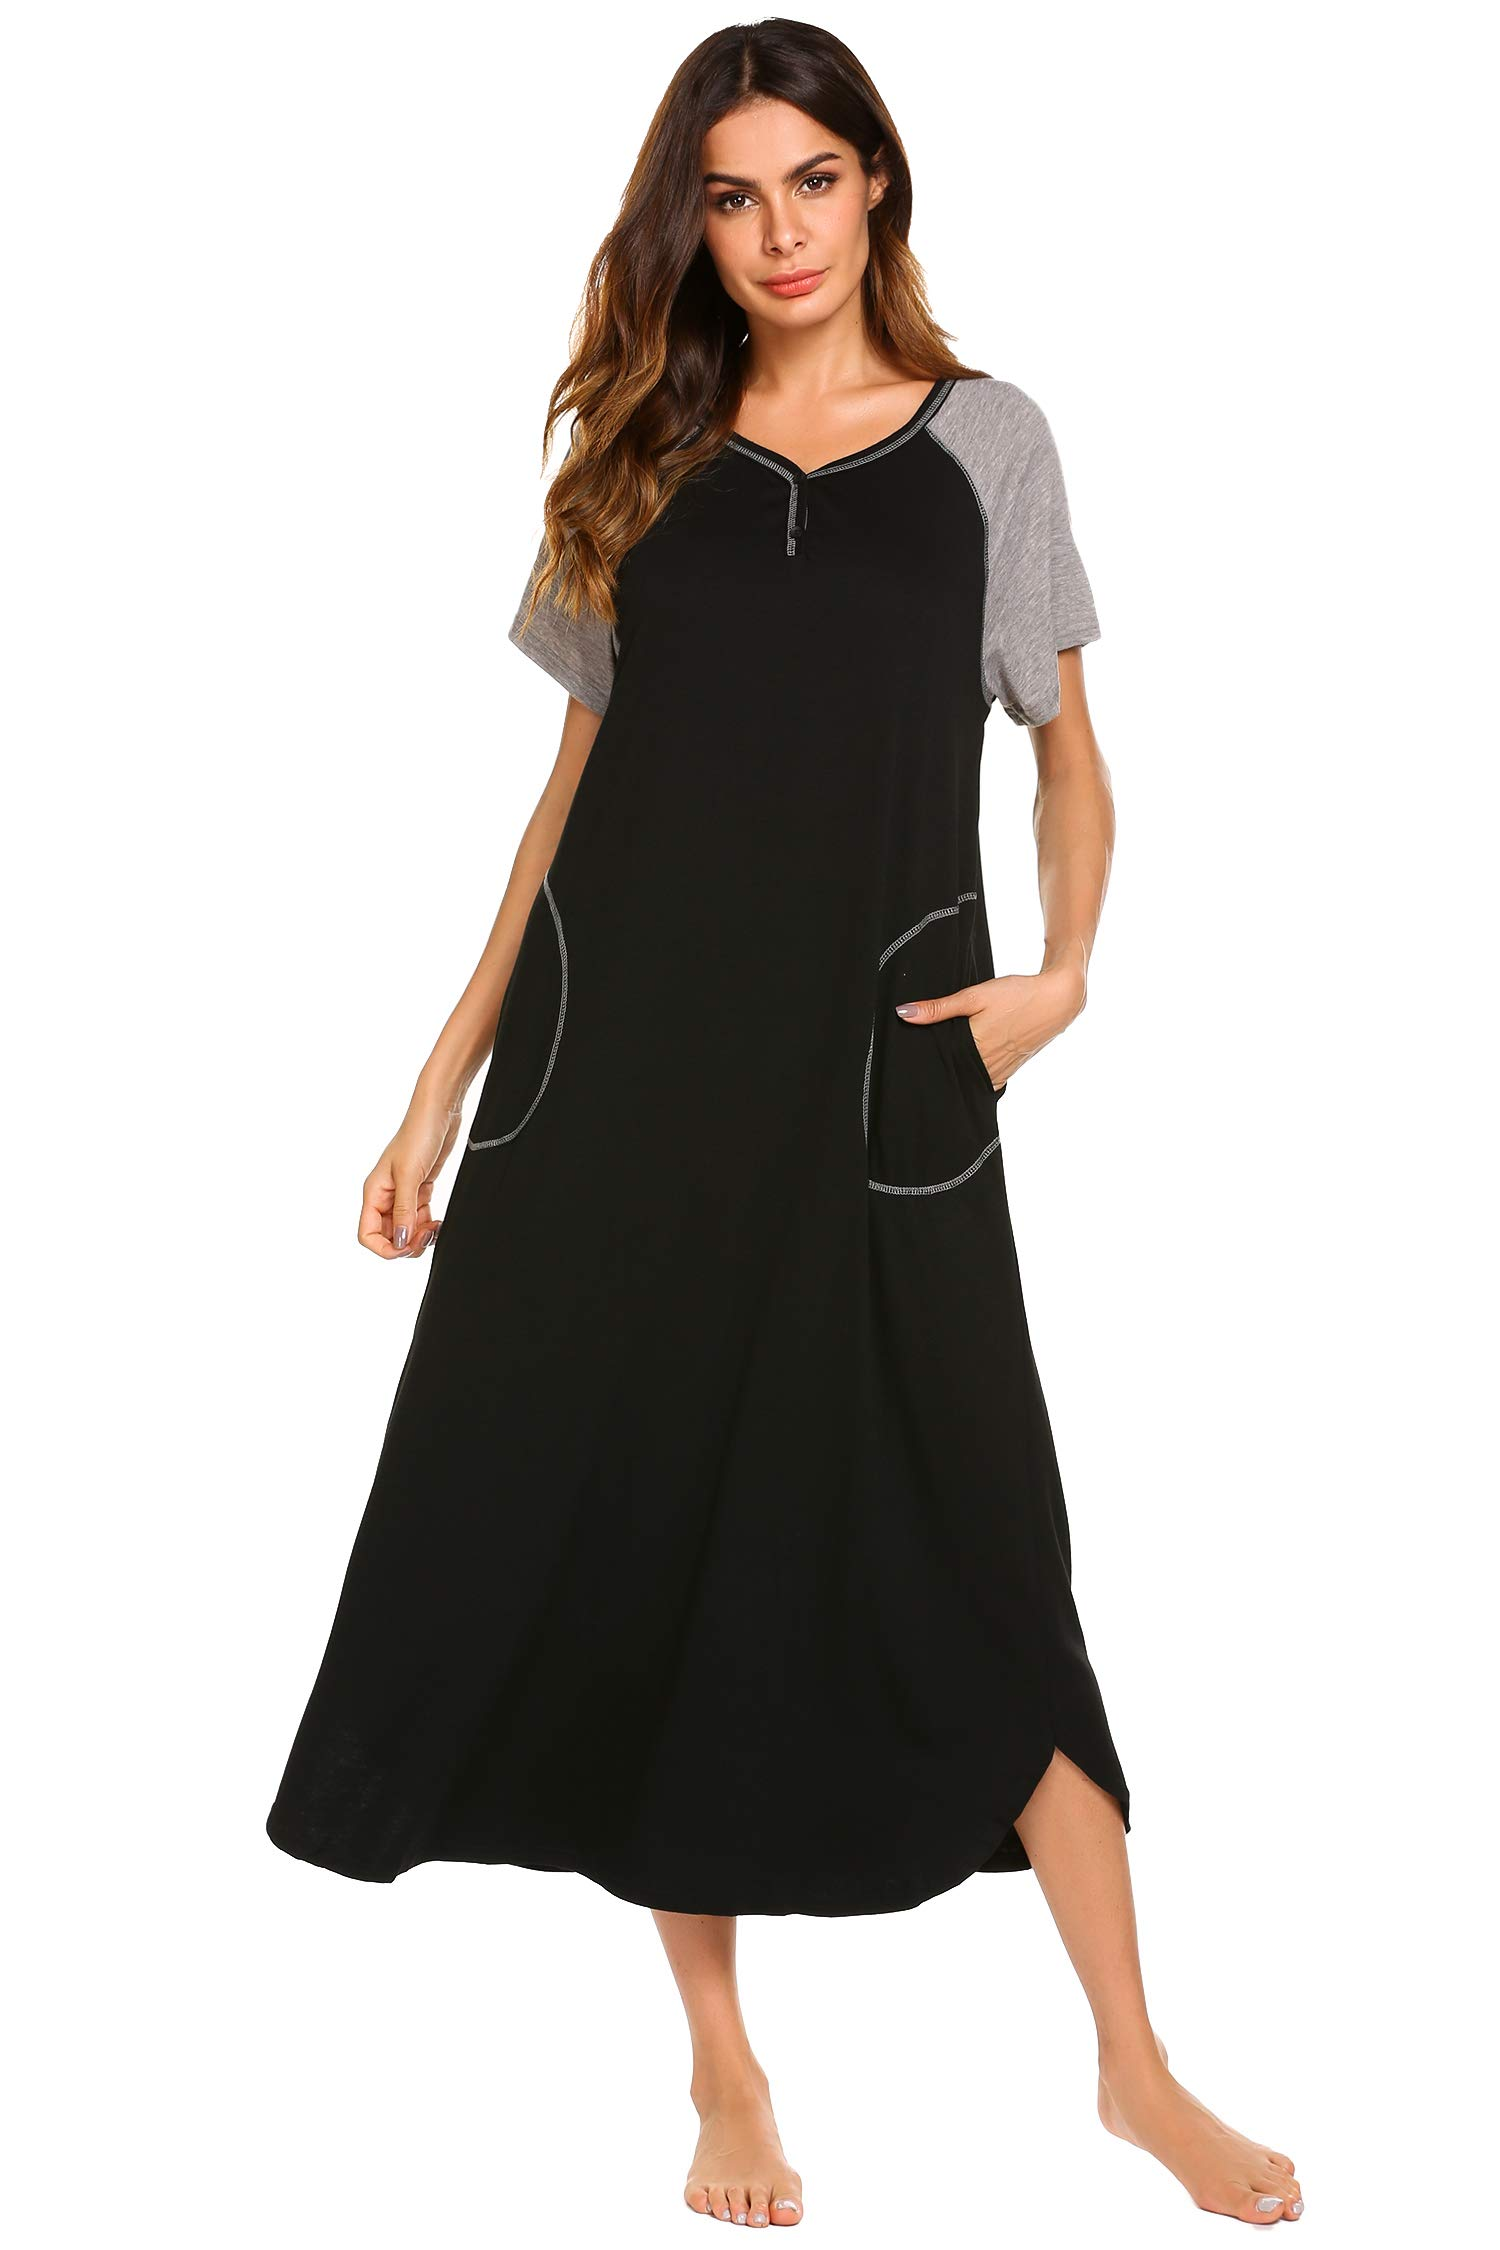 db9100e5a0920 Ekouaer Long Nightgown,Women's Loungewear Short Sleeve Sleepwear Full  Length Sleep Shirt with Pockets product